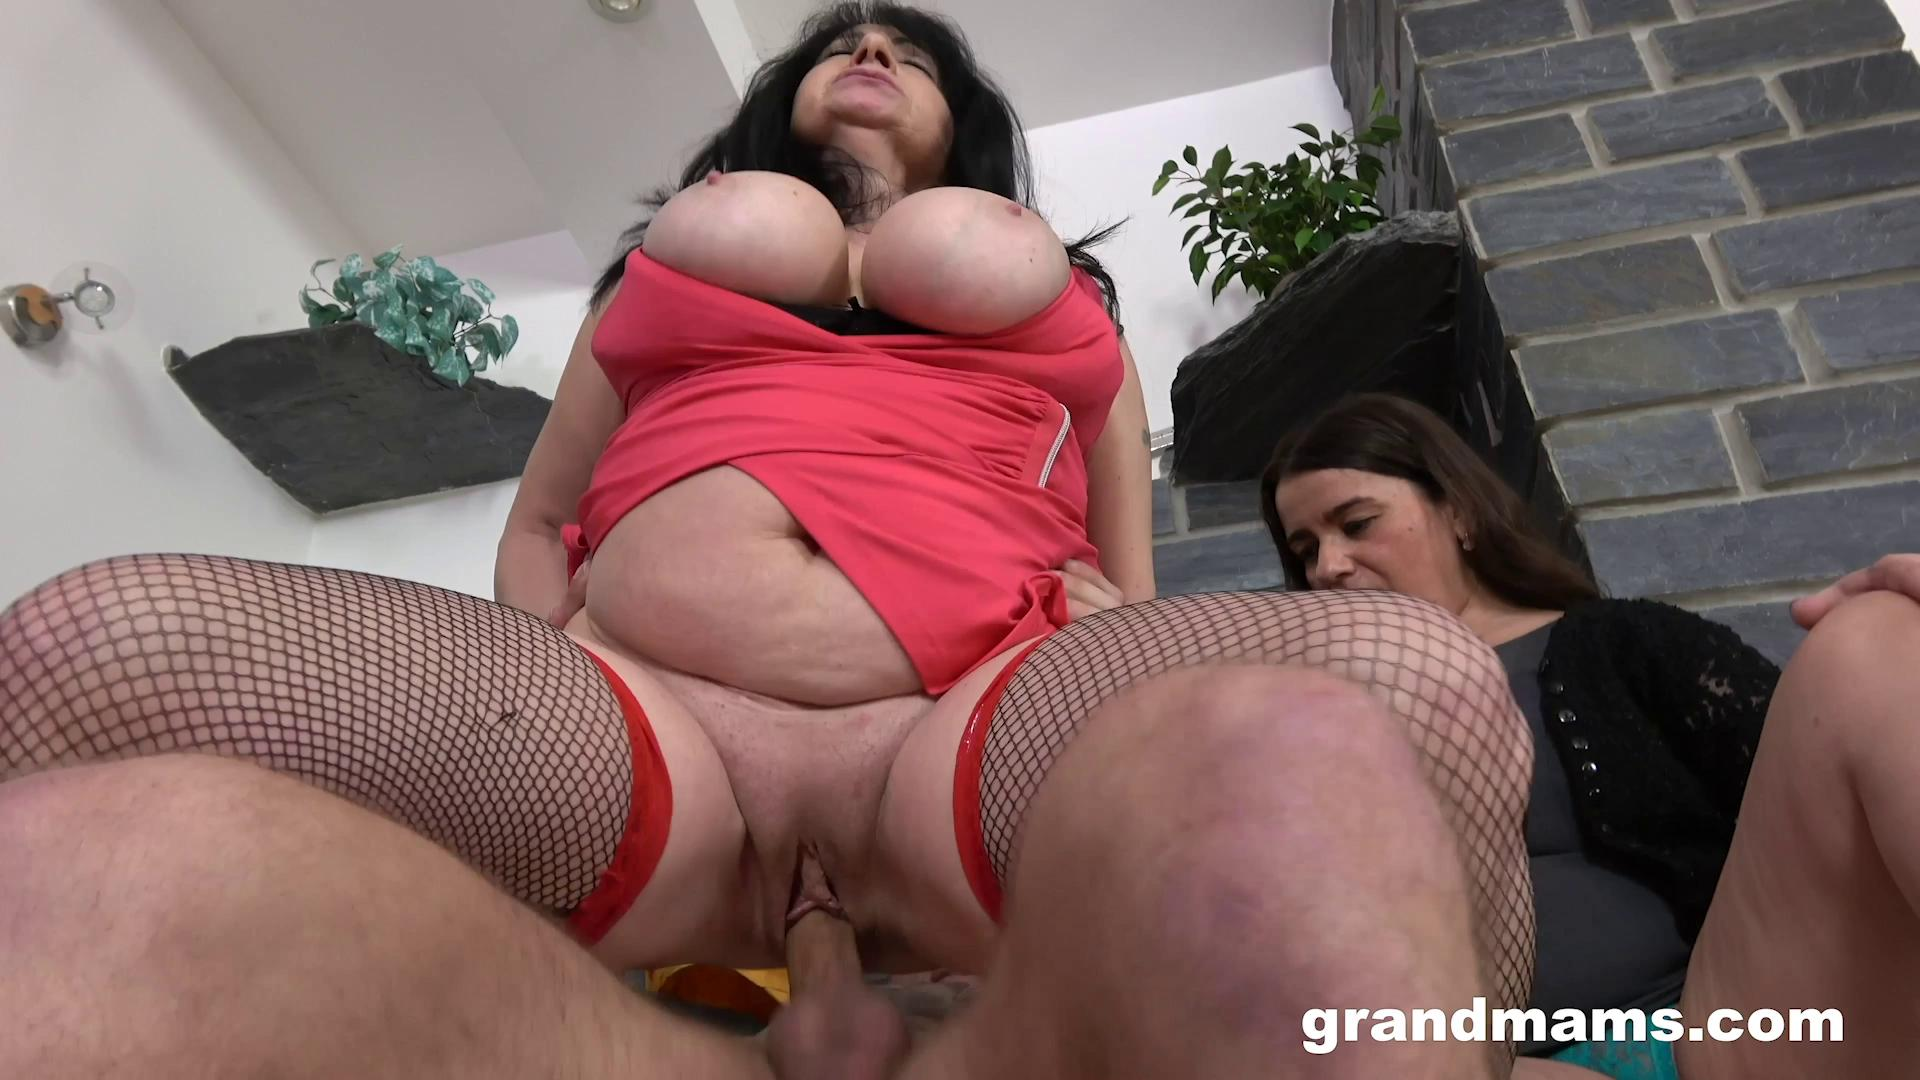 [GrandMams] Mature Sluts With Big Tits Love Young Cock (06.23.2020)